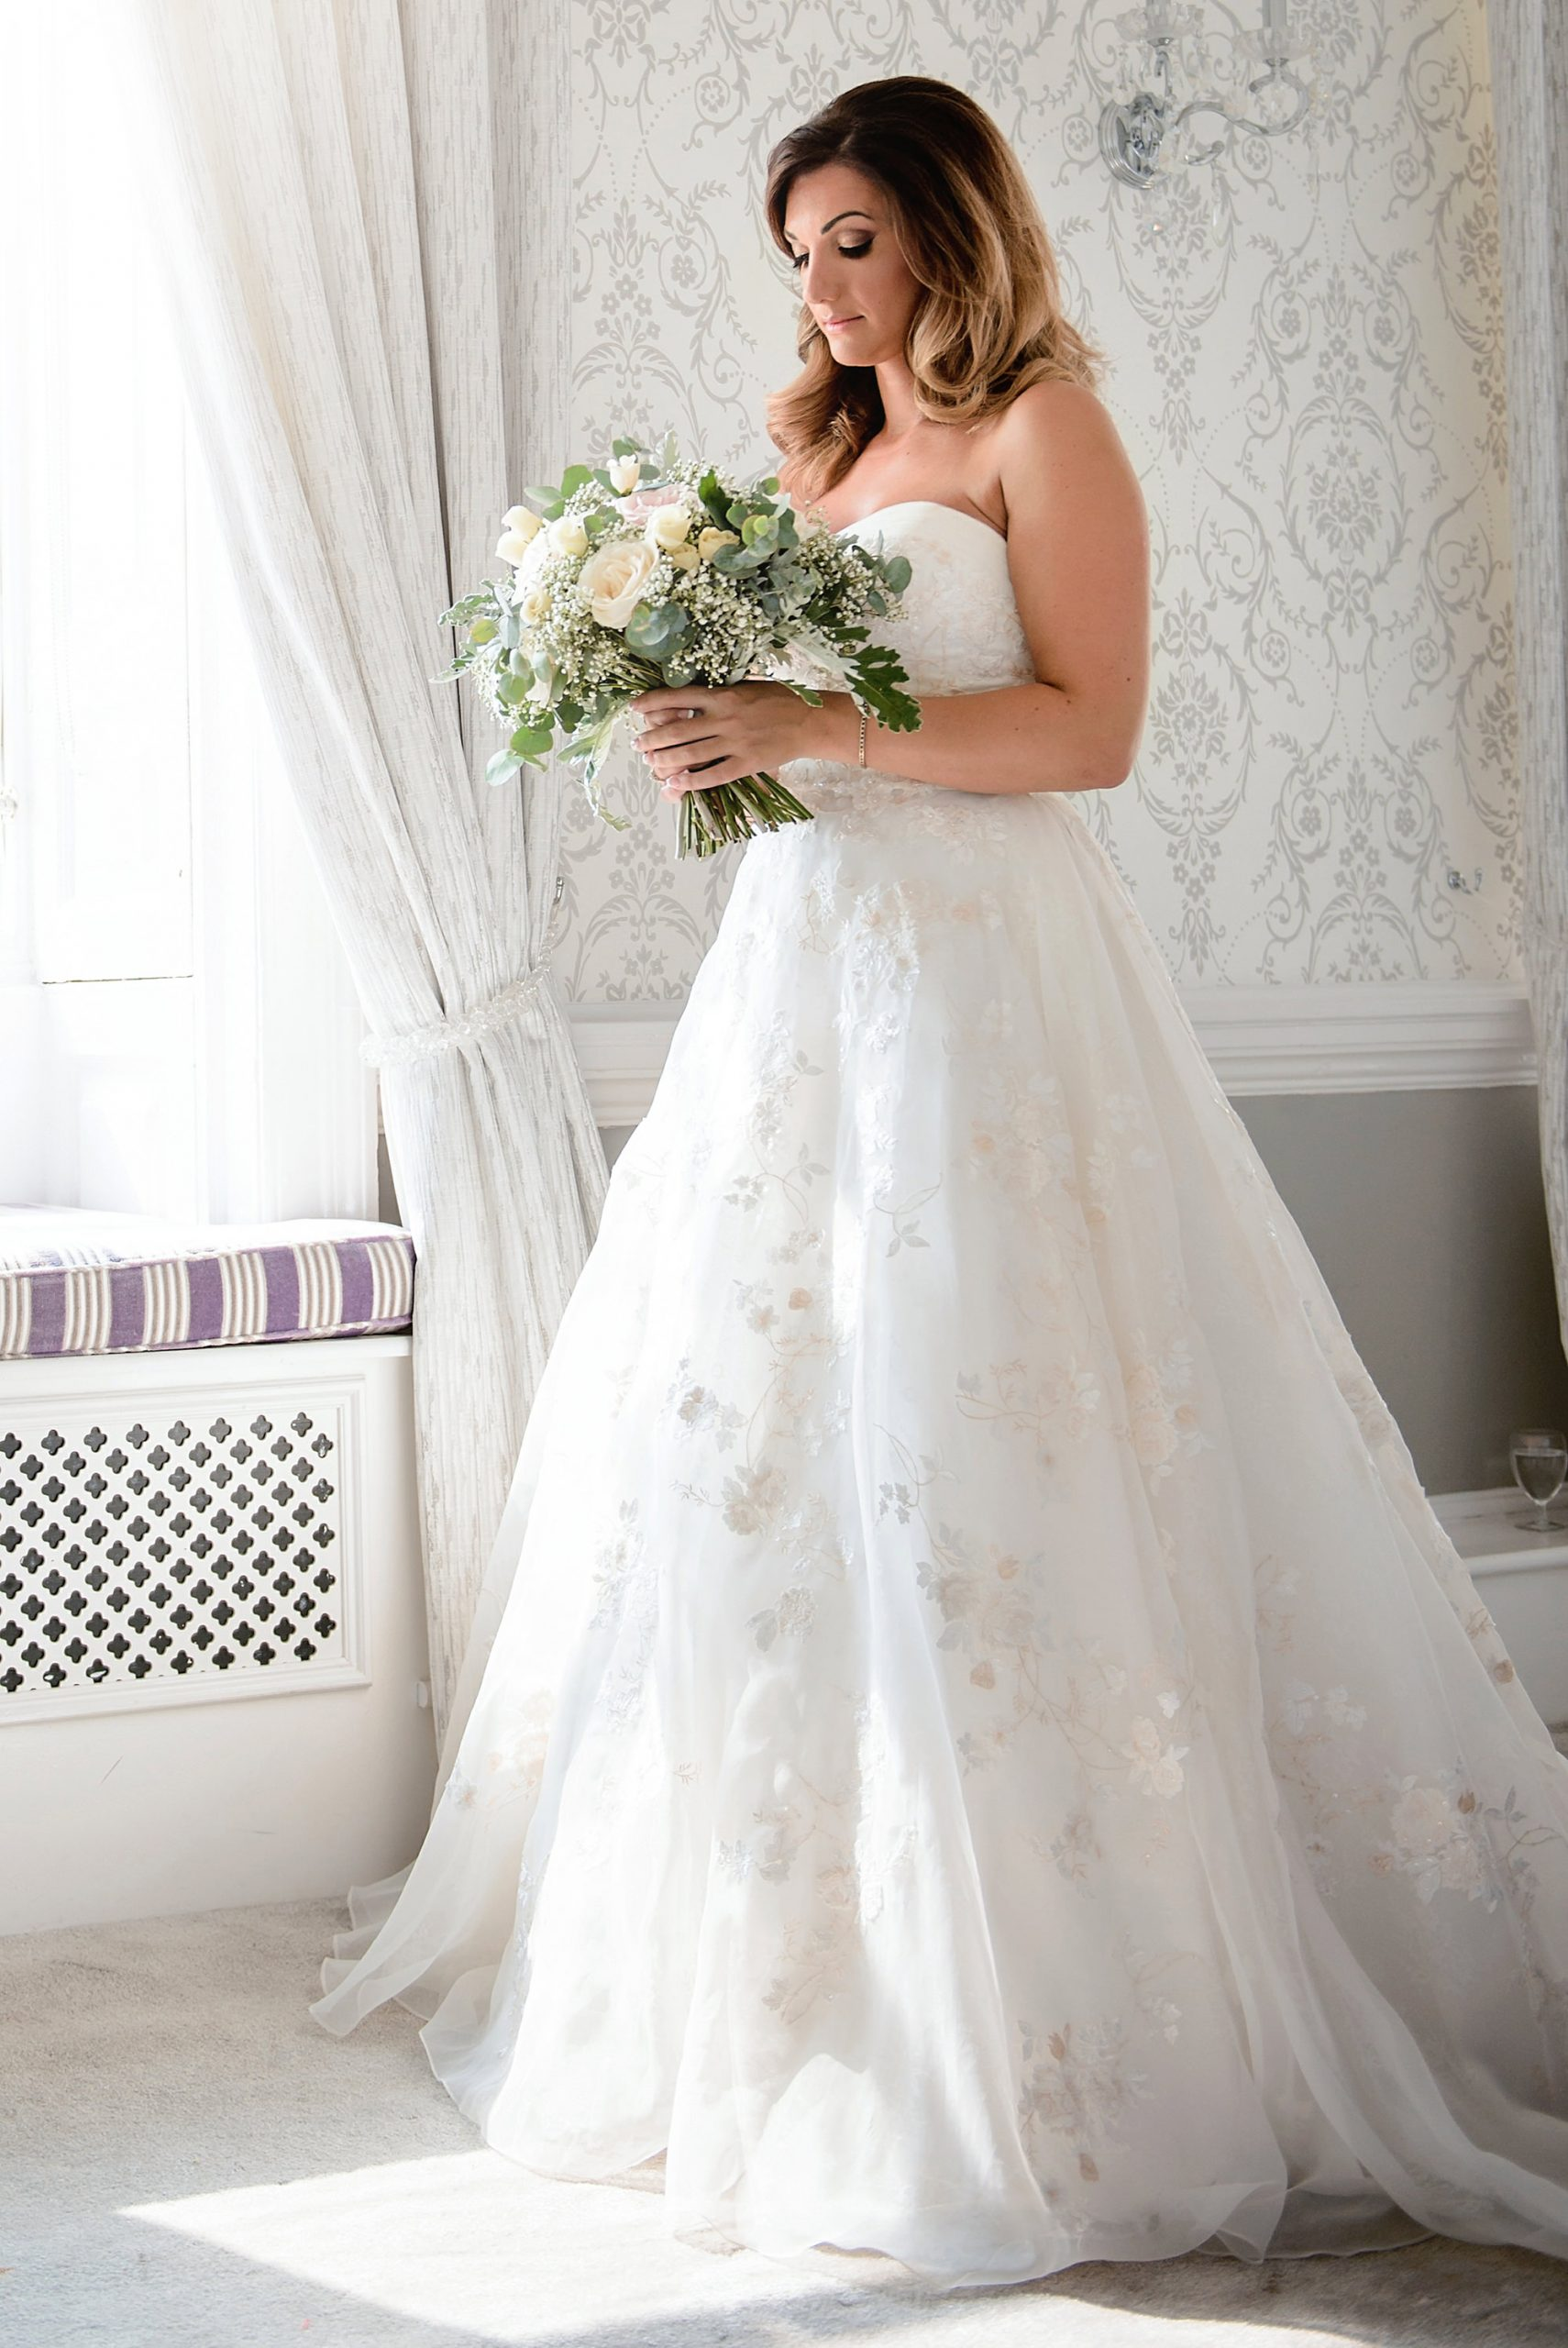 bridal portrait in the suite at Moor Park